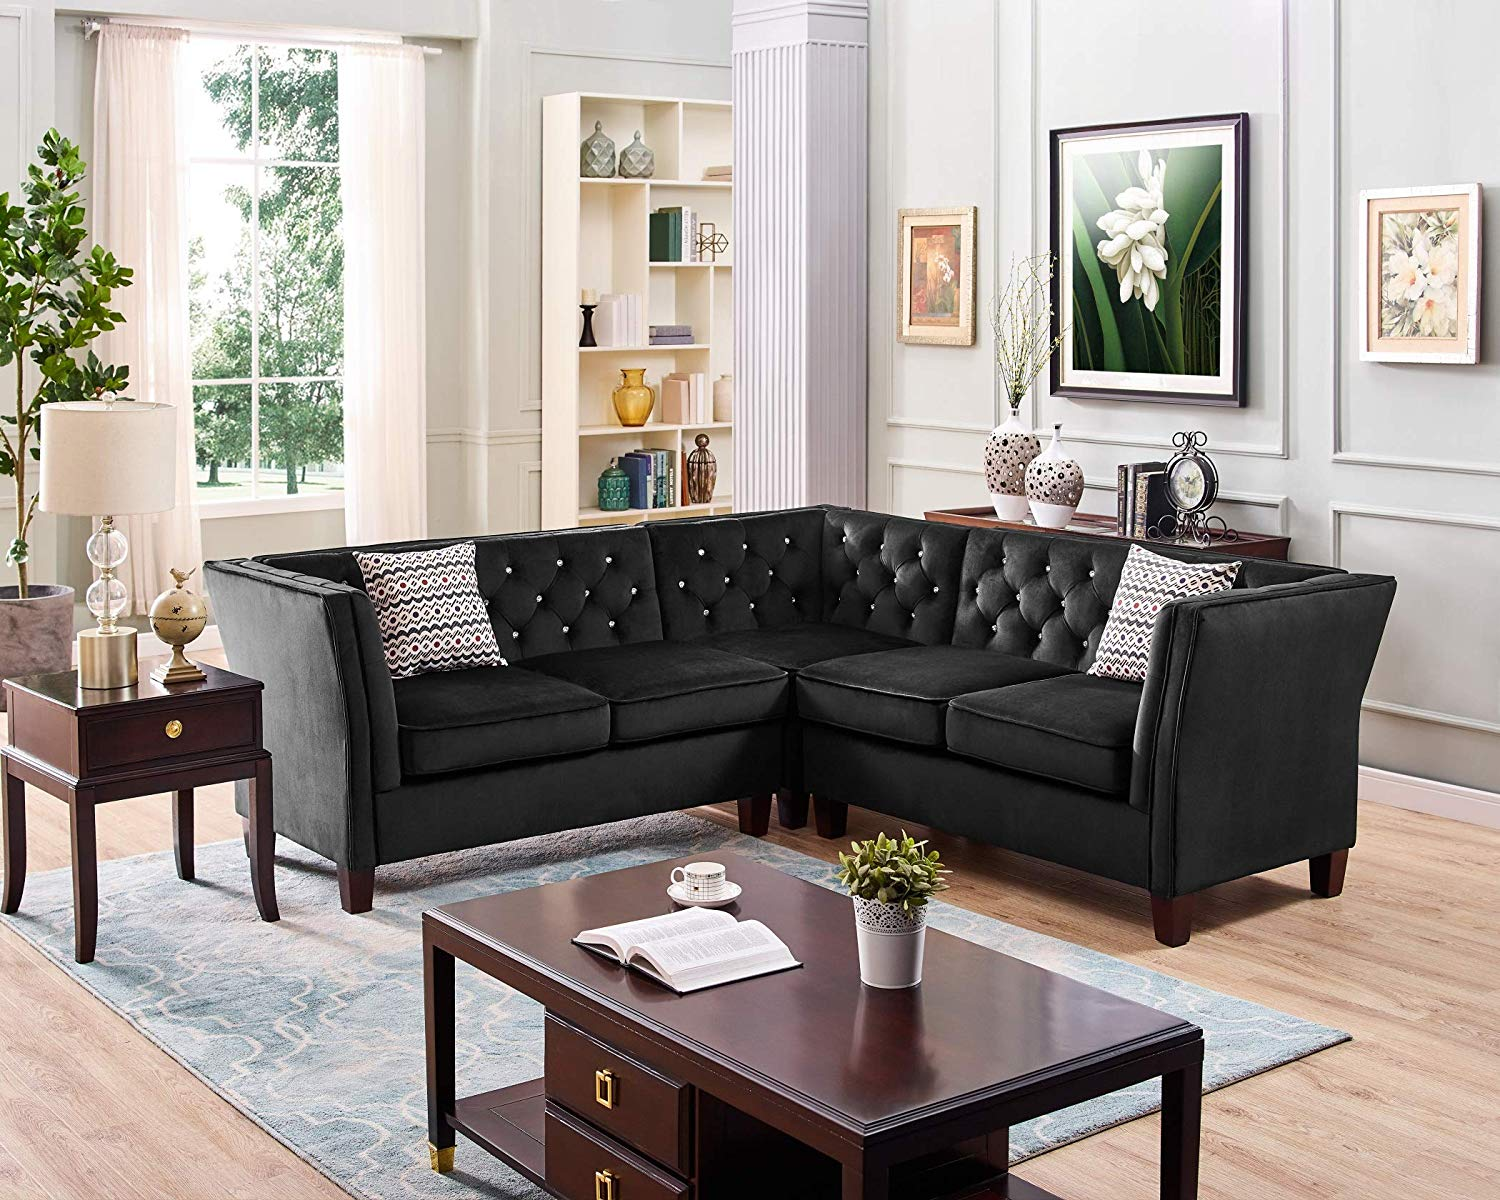 Sectional Sofa with Chaise and Ottoman 4 Pieces Set Modern Velvet Tufted Button (Black) 2019 Model by Bliss Brands